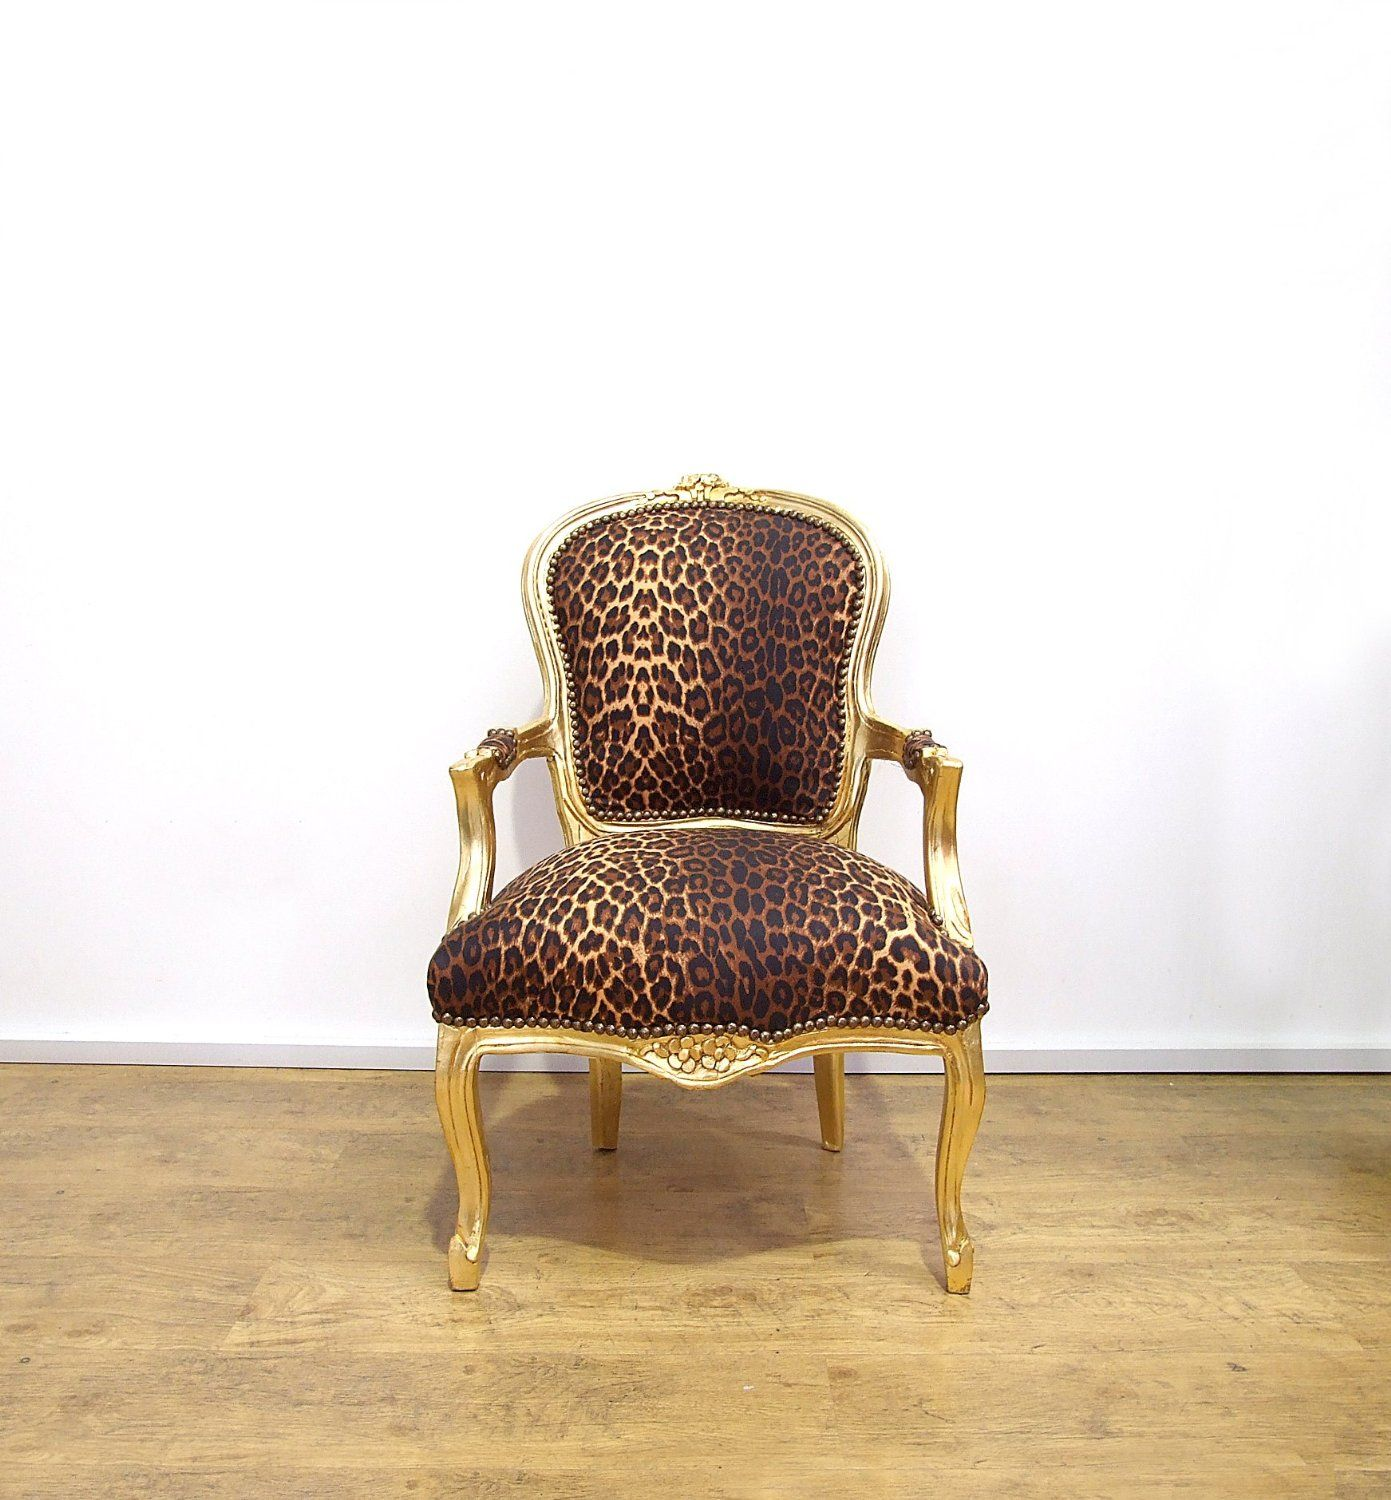 Vintage Retro French Louis XV Style Chair with Leopard